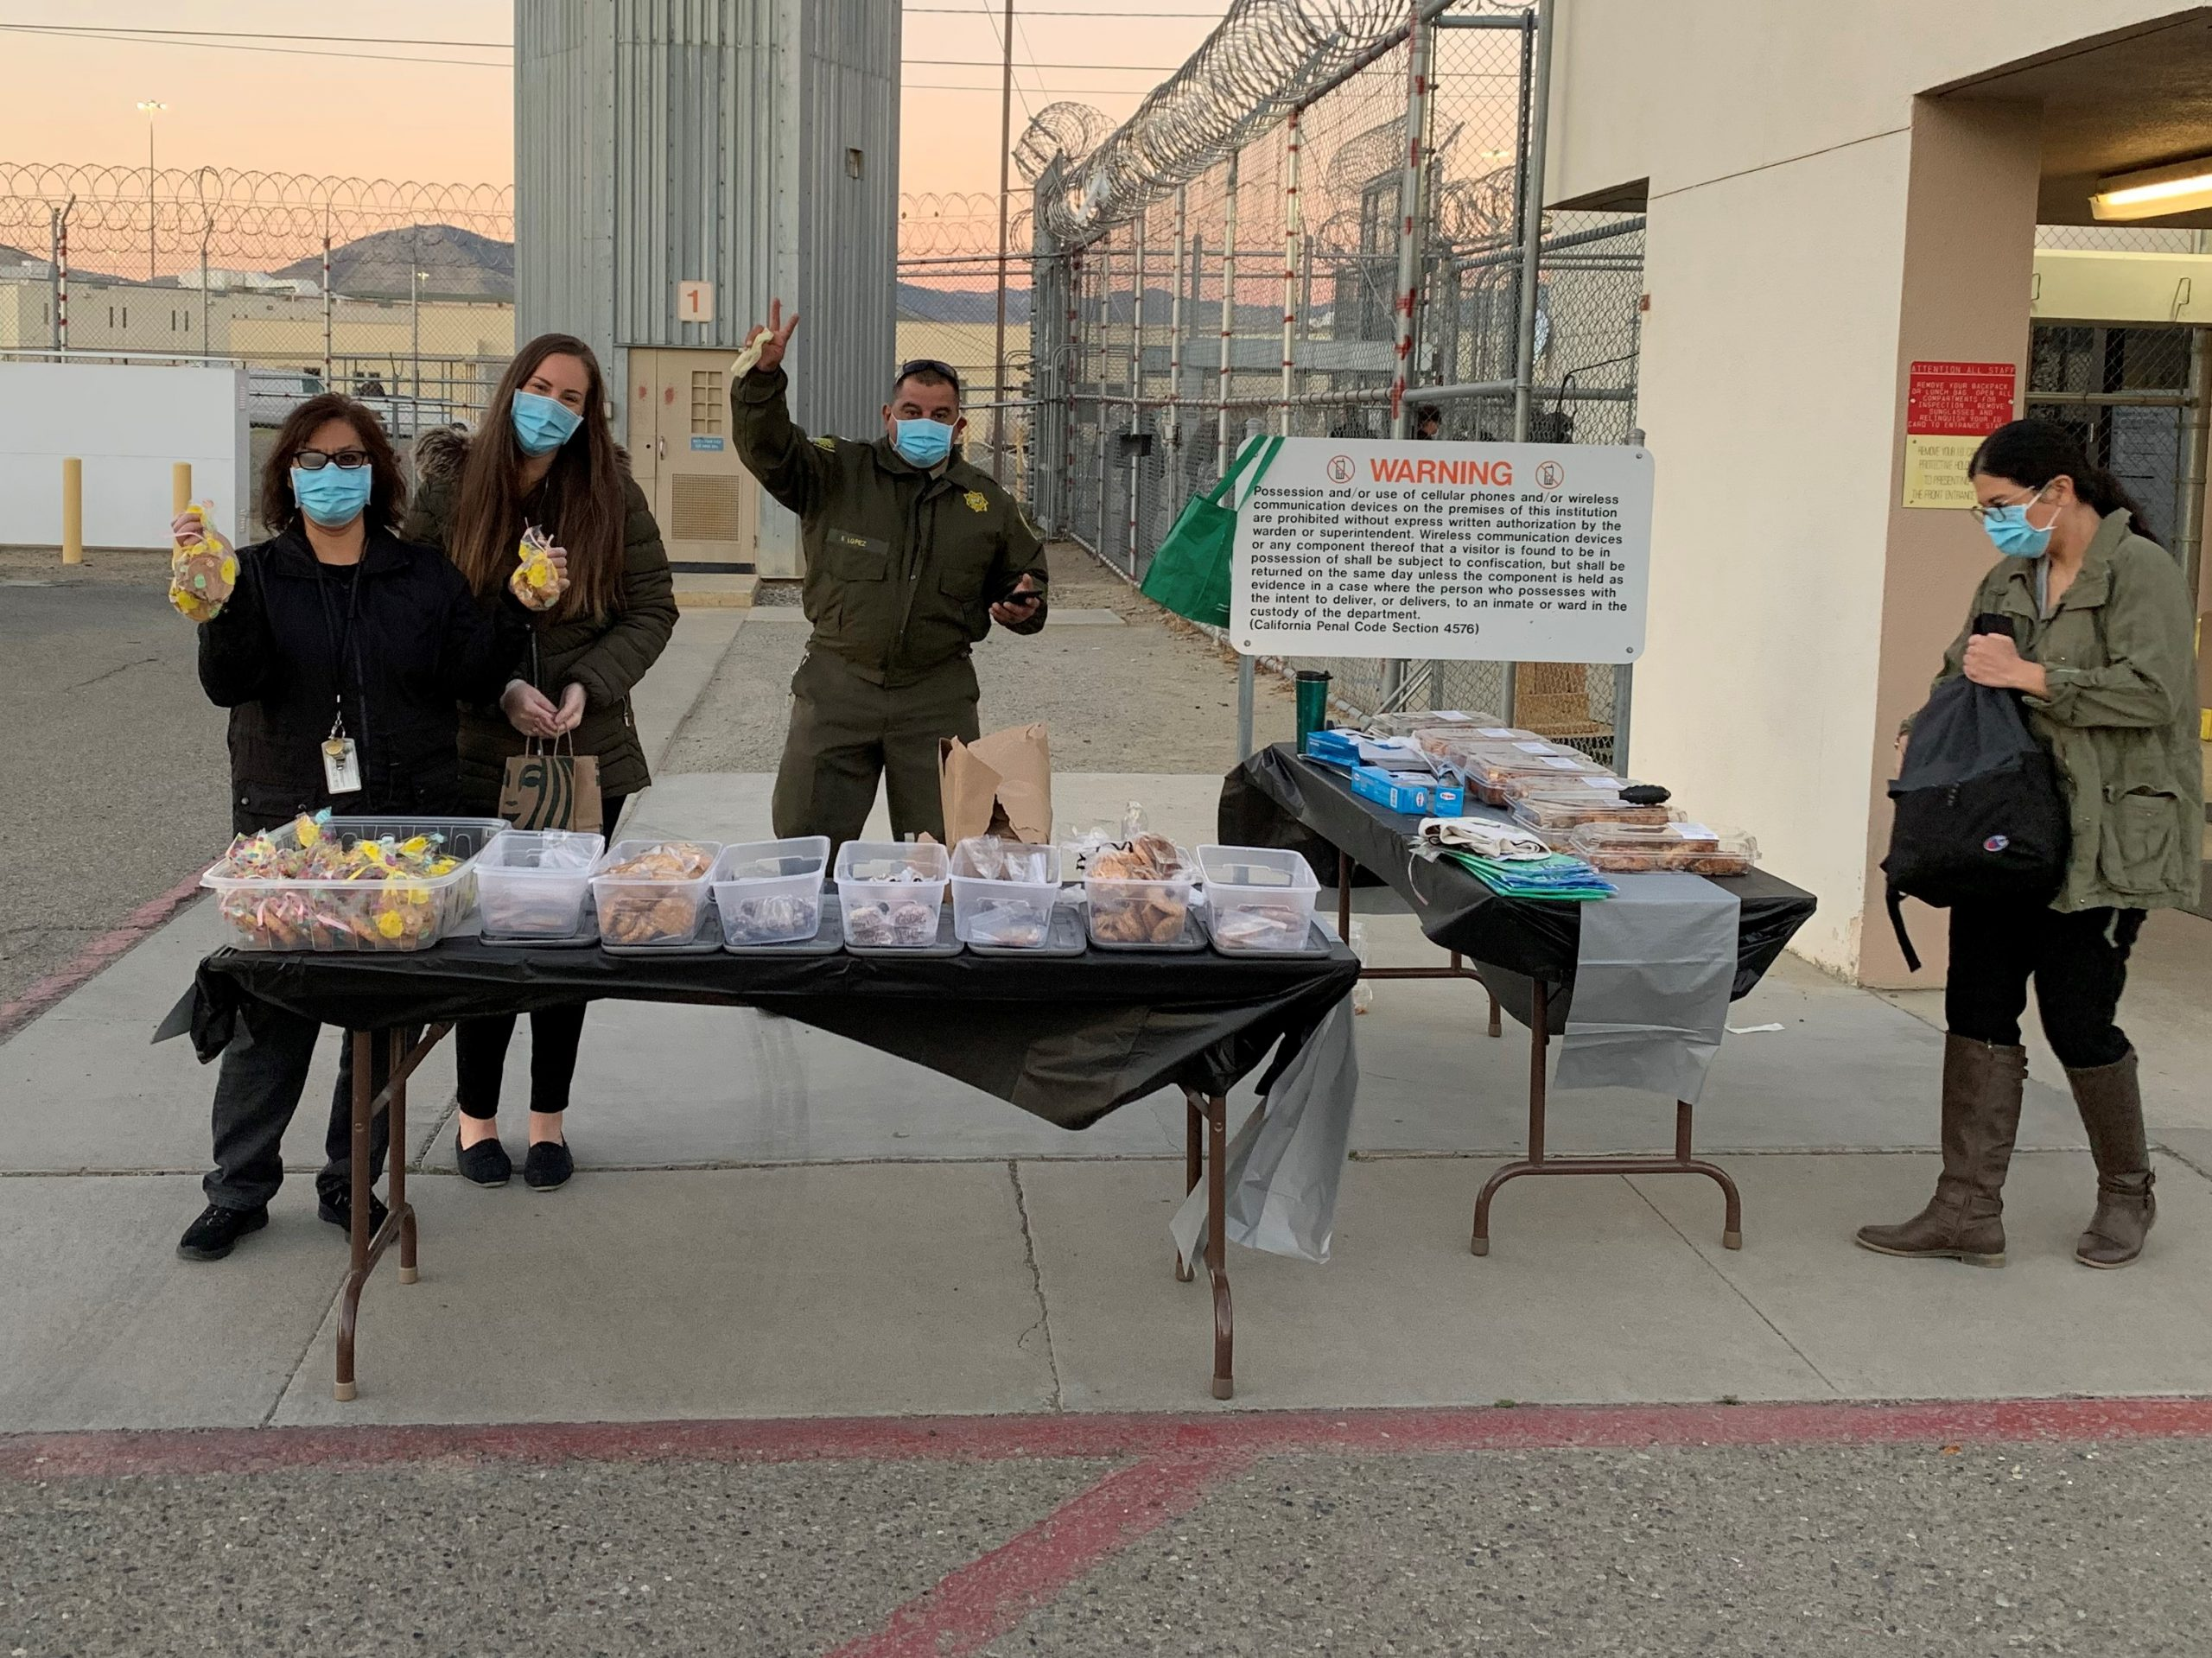 Avenal prison staff stand at tables selling baked goods.